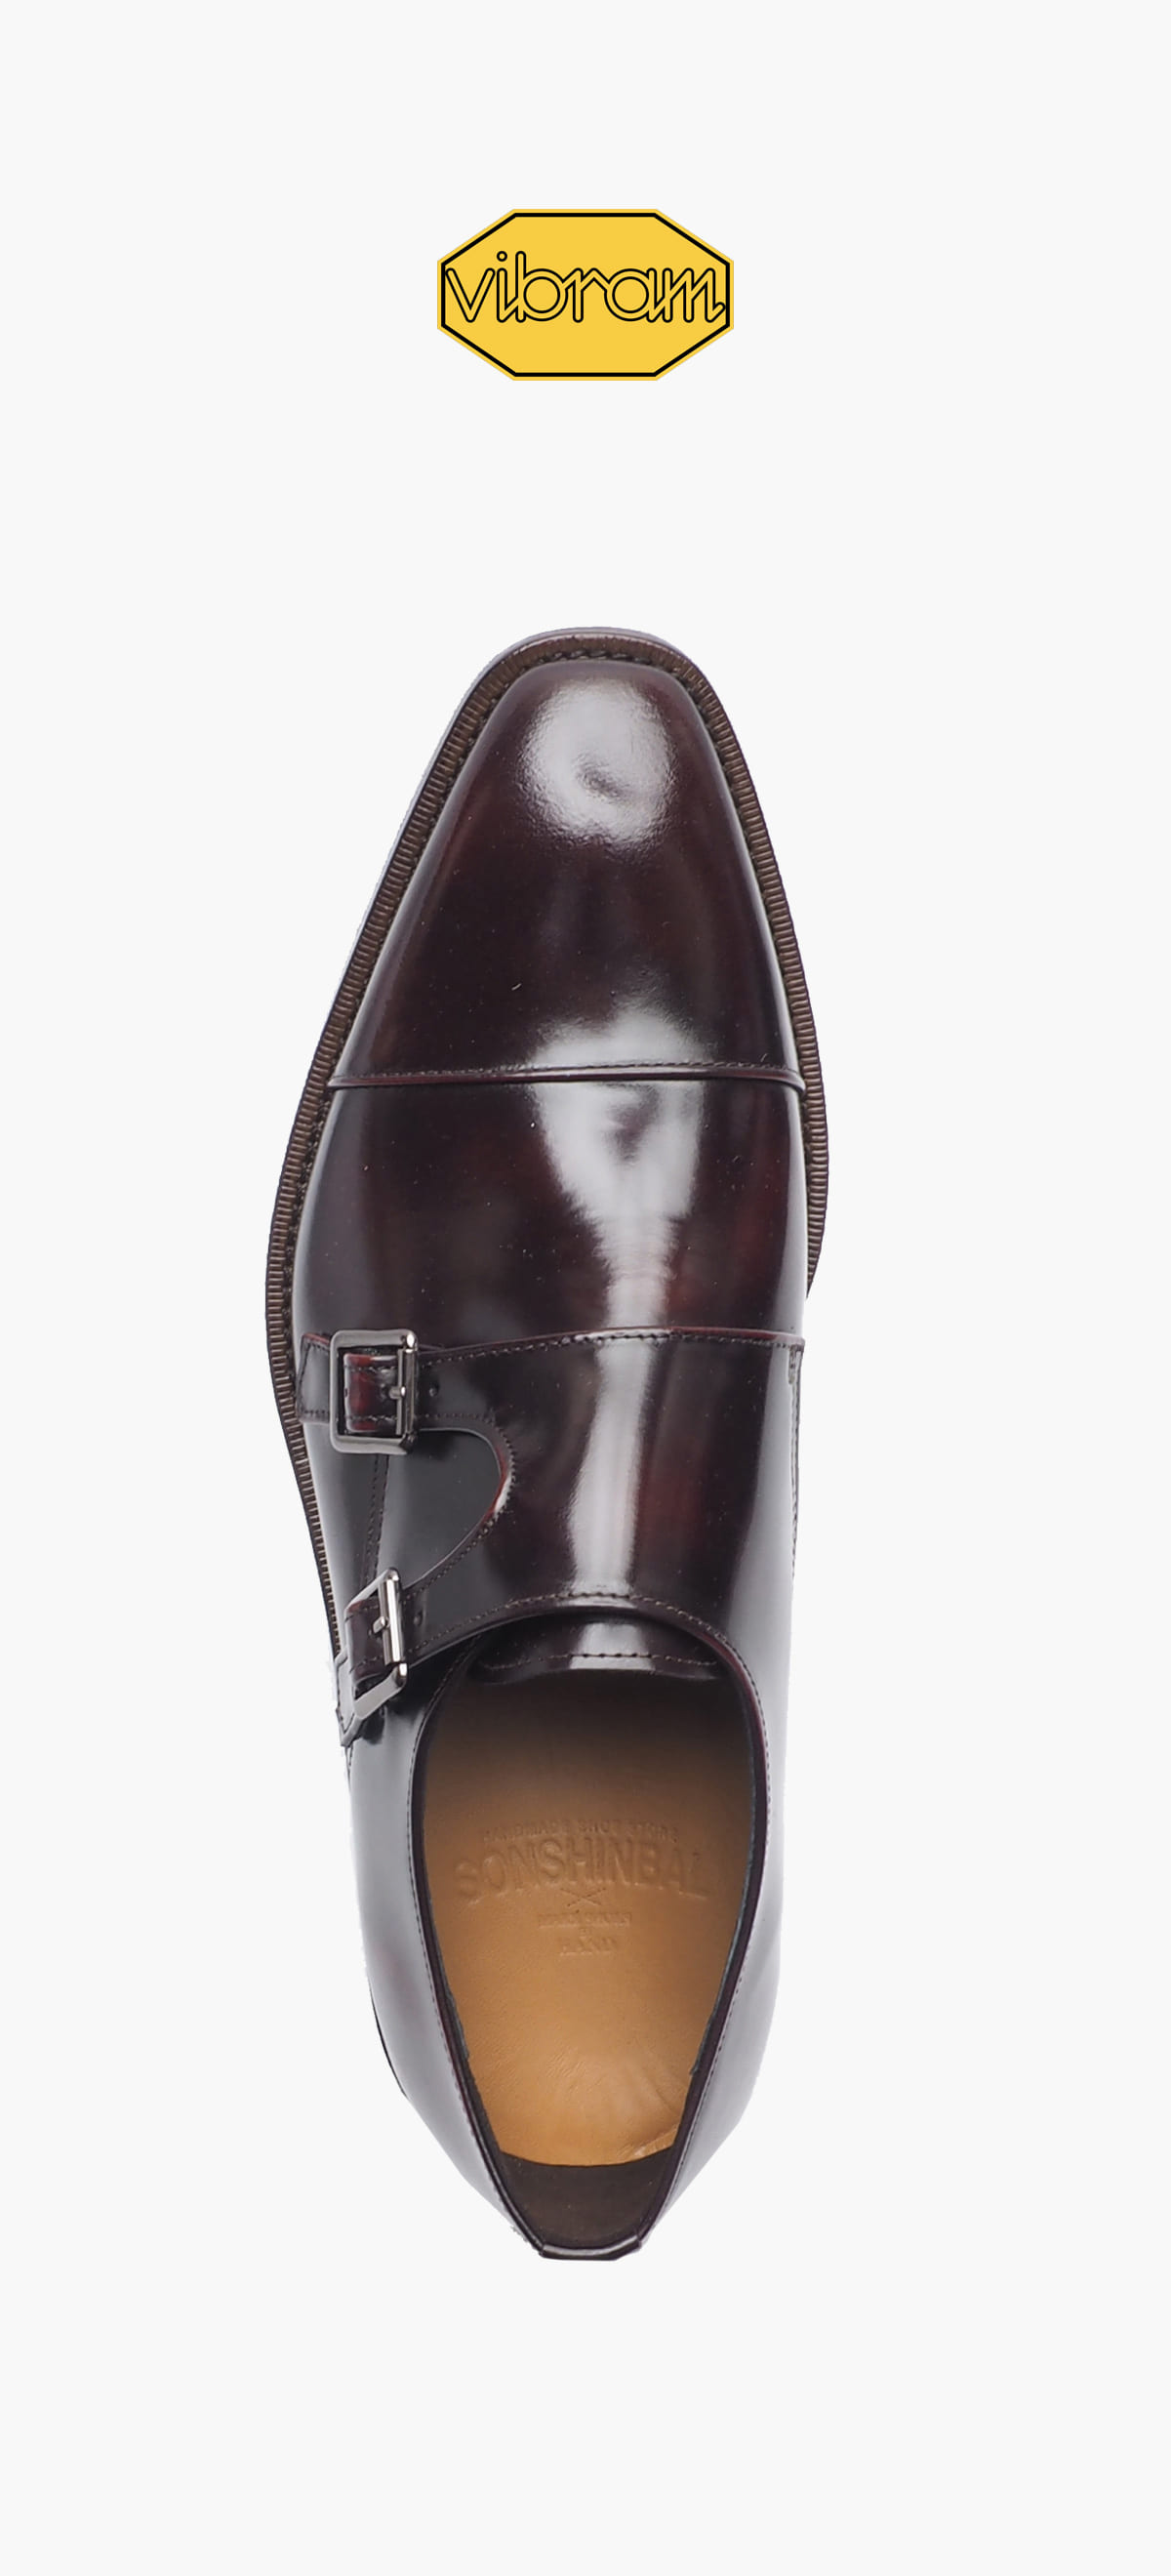 Monk Strap 8031-07 Wine Two-Tone